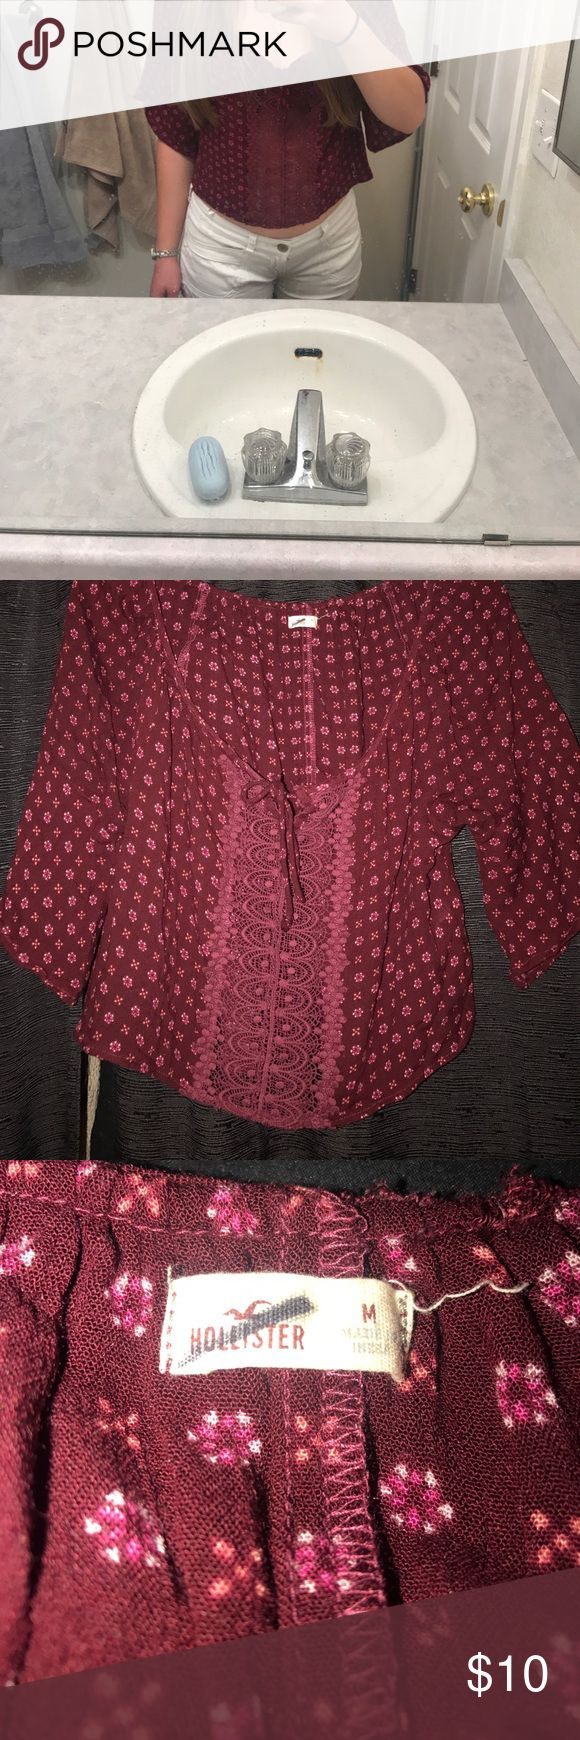 HOLLISTER TOP-Size MEDIUM Hollister top. Makes a perfect outfit with white or Denim shorts. Size Medium. Hollister Tops Blouses